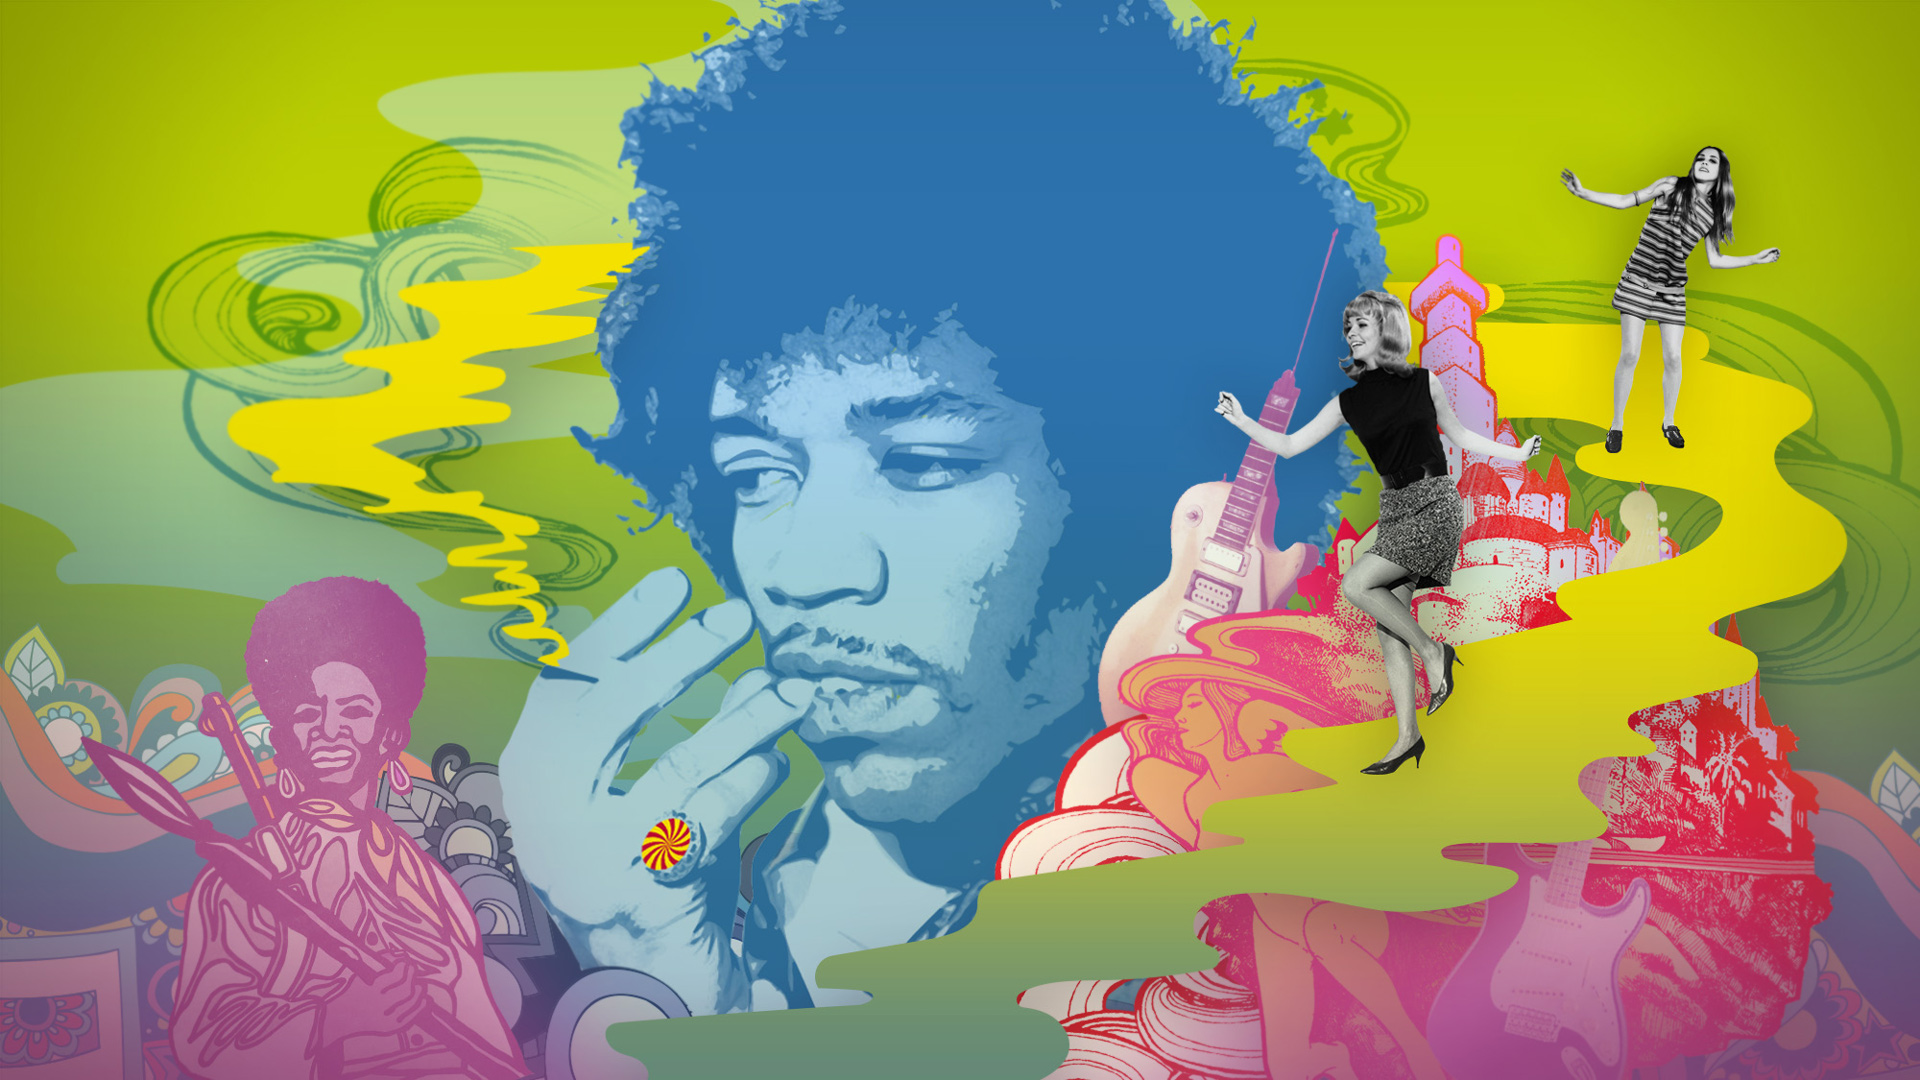 The V&A museum, Revolution exhibition, motion graphics design, london, 60's, sixties, records and rebels, roxanne silverwood, jimi hendrix, music